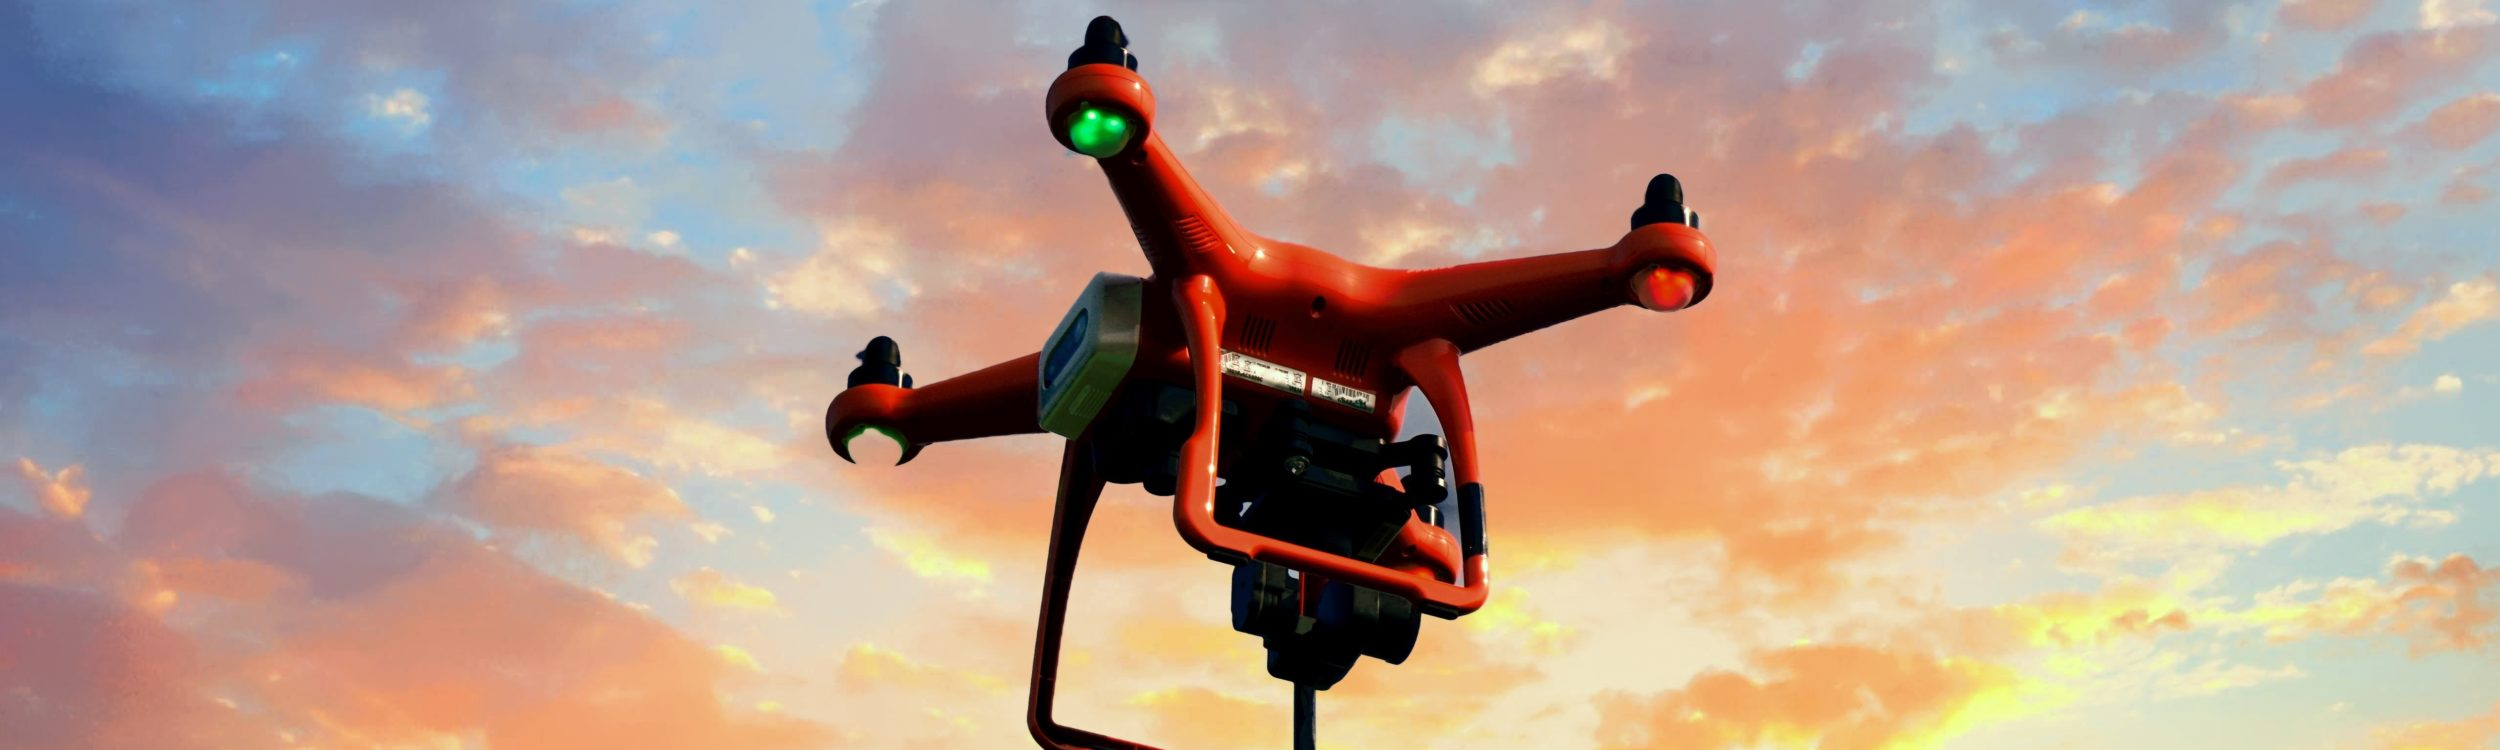 ImprovingUtilityPoleInspection andMaintenance withLiDAR, Powered byDrones featured image